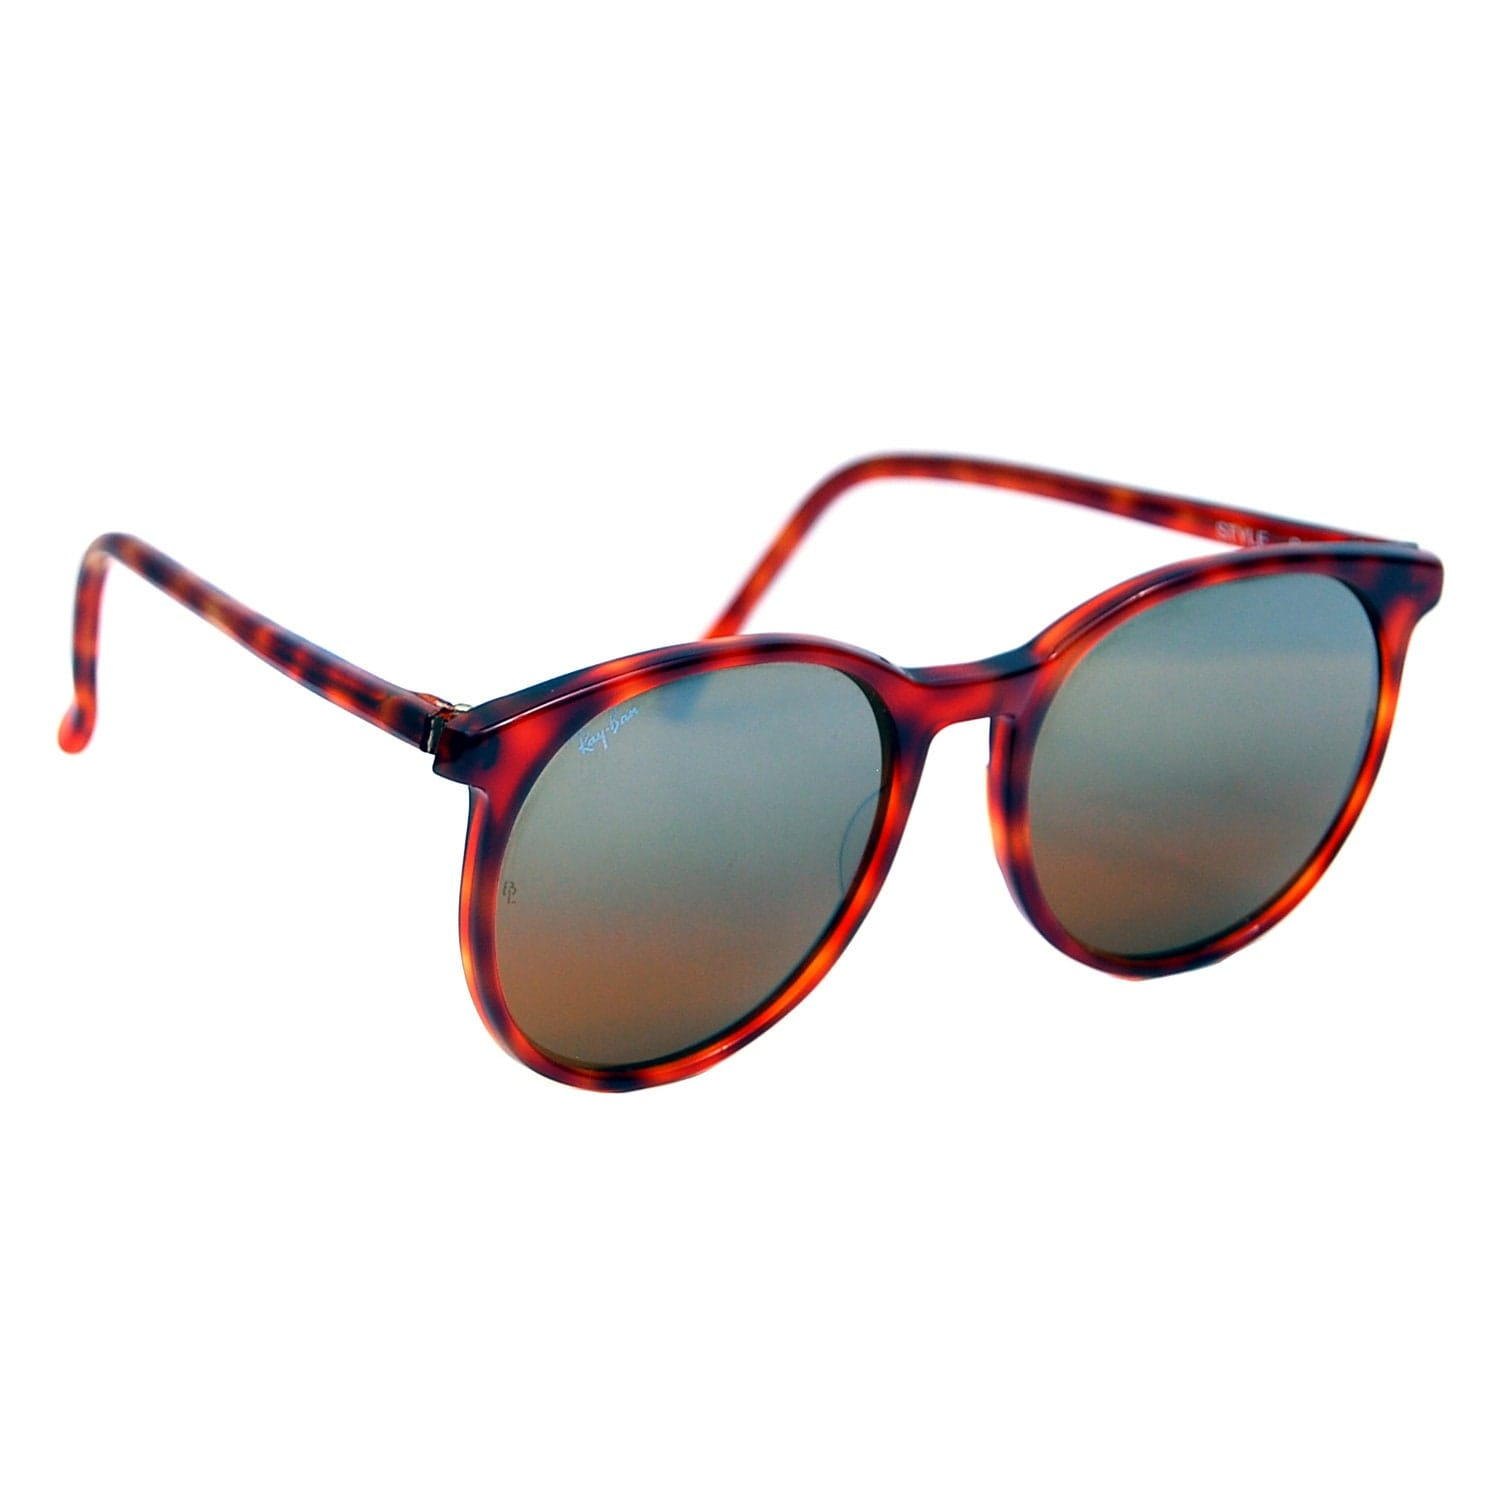 bausch and lomb ray bans